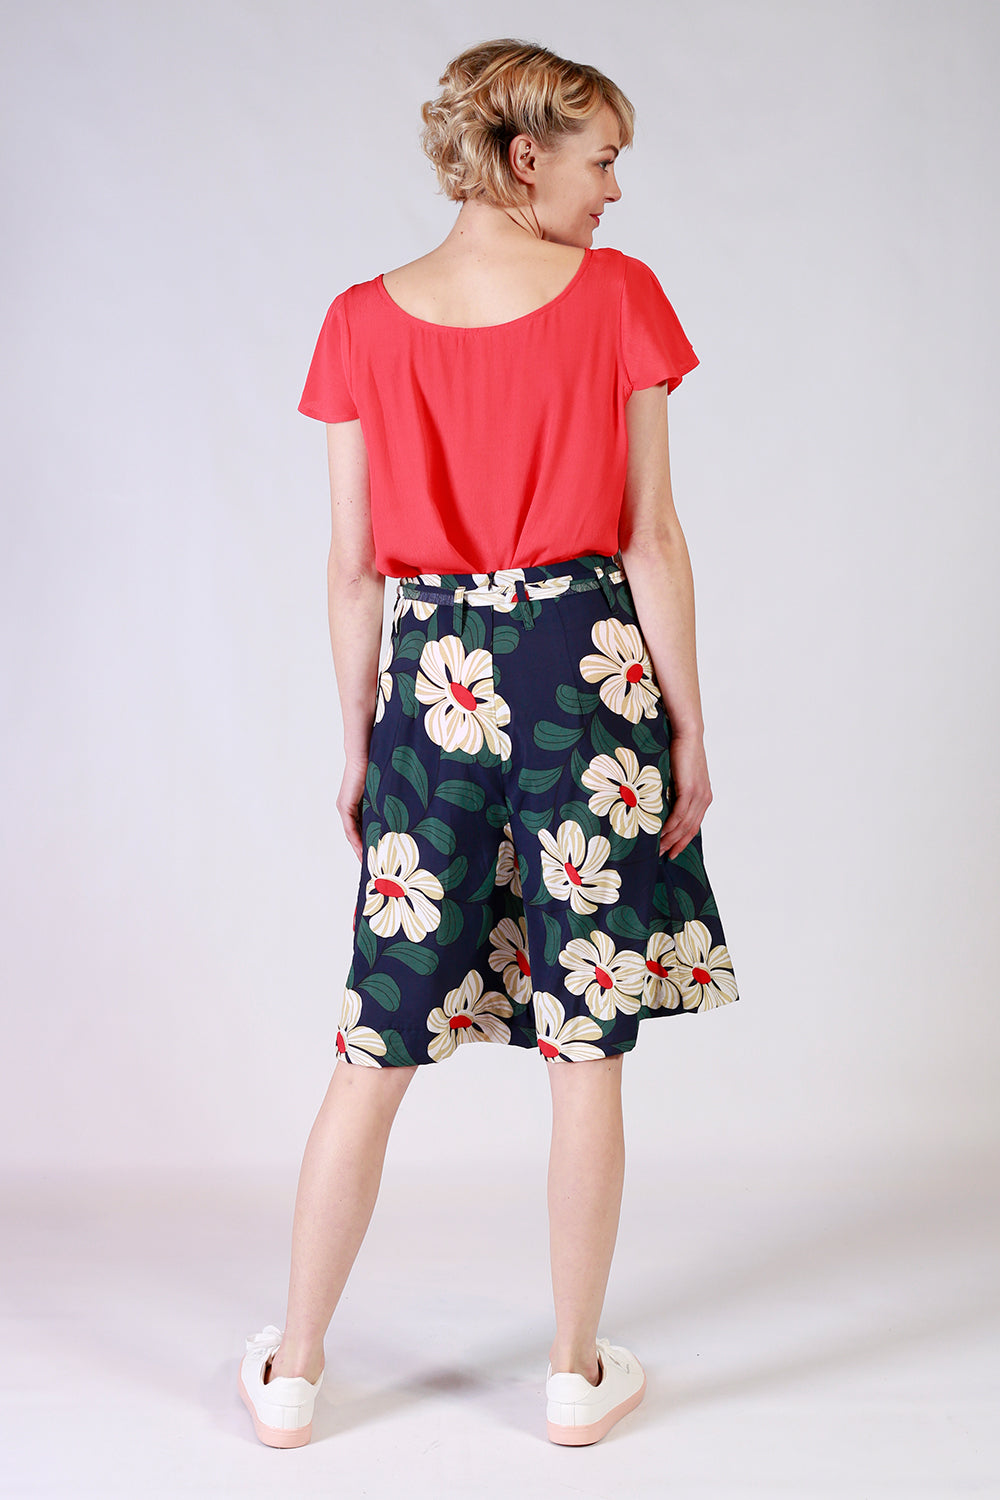 Miss Directed Pants | Annah Stretton NZ | Womens Fashion NZ | Floral Pants NZ | Wide Leg Pants